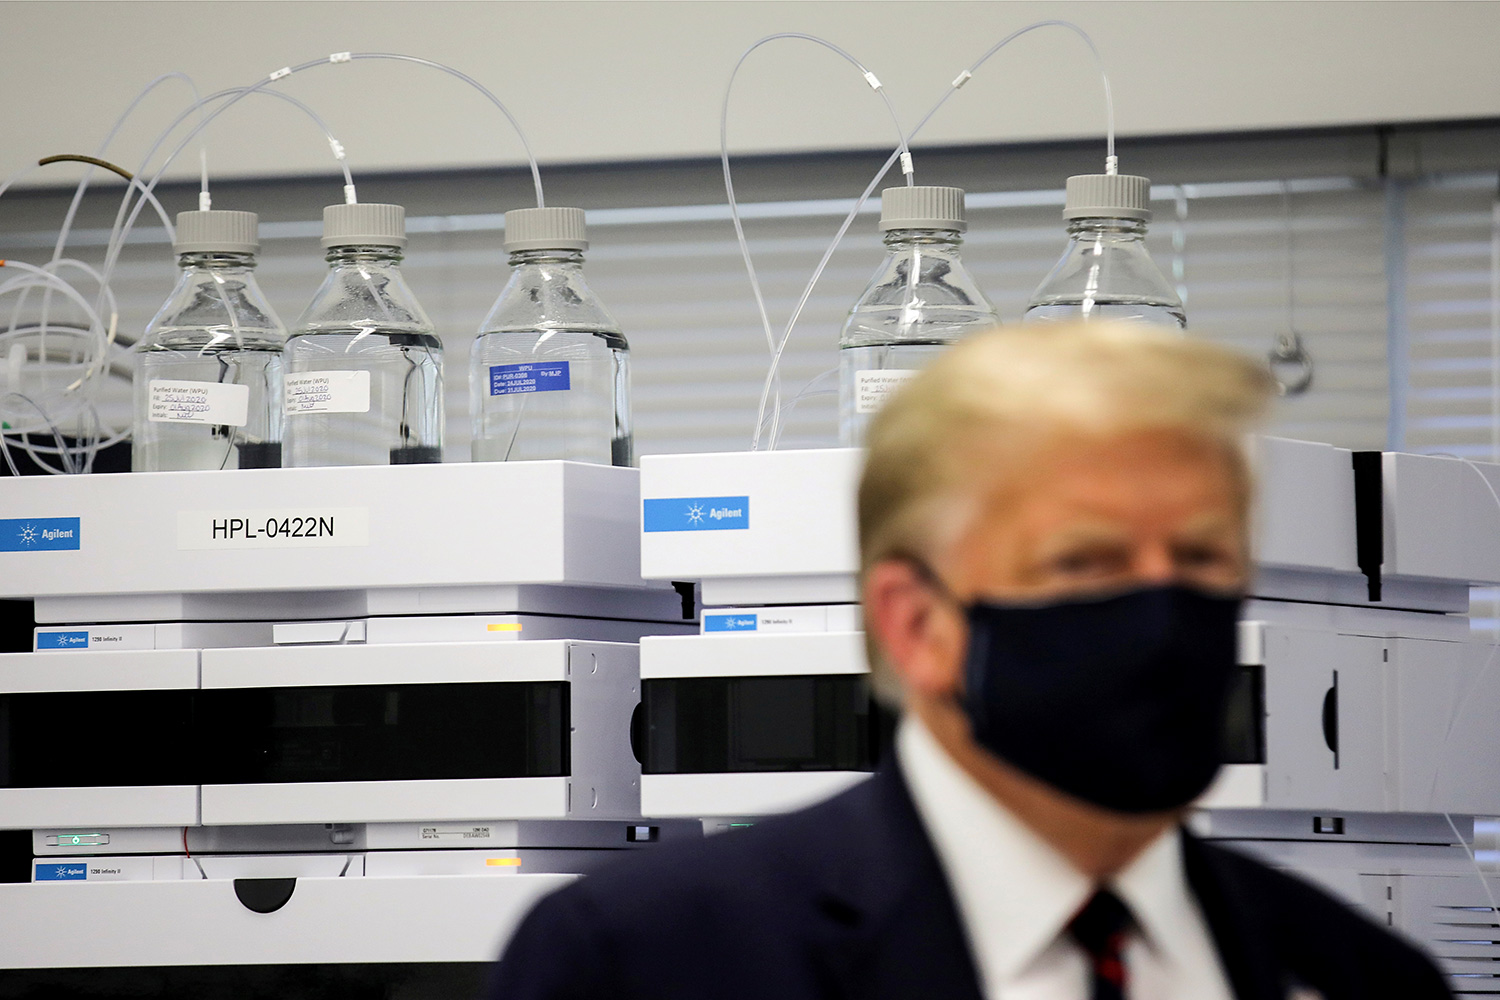 The photo shows the president wearing a mask in front of a fancy piece of equipment.